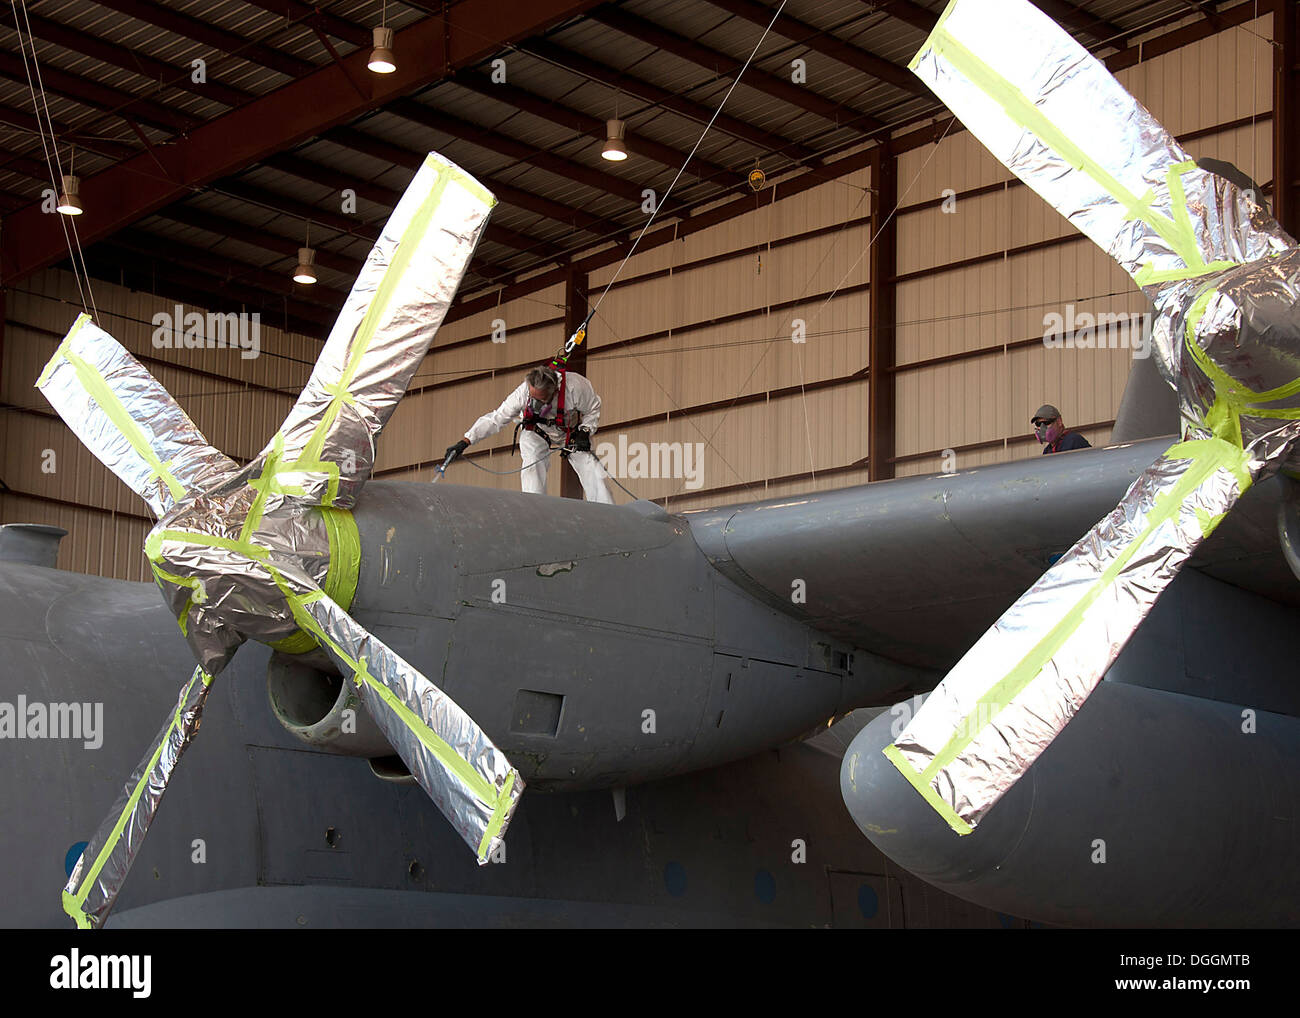 Mr. Larry Allen, Aircraft Painter, L3 Communications Integrated Systems Vertex Aerospace, apply paint to protect Stock Photo